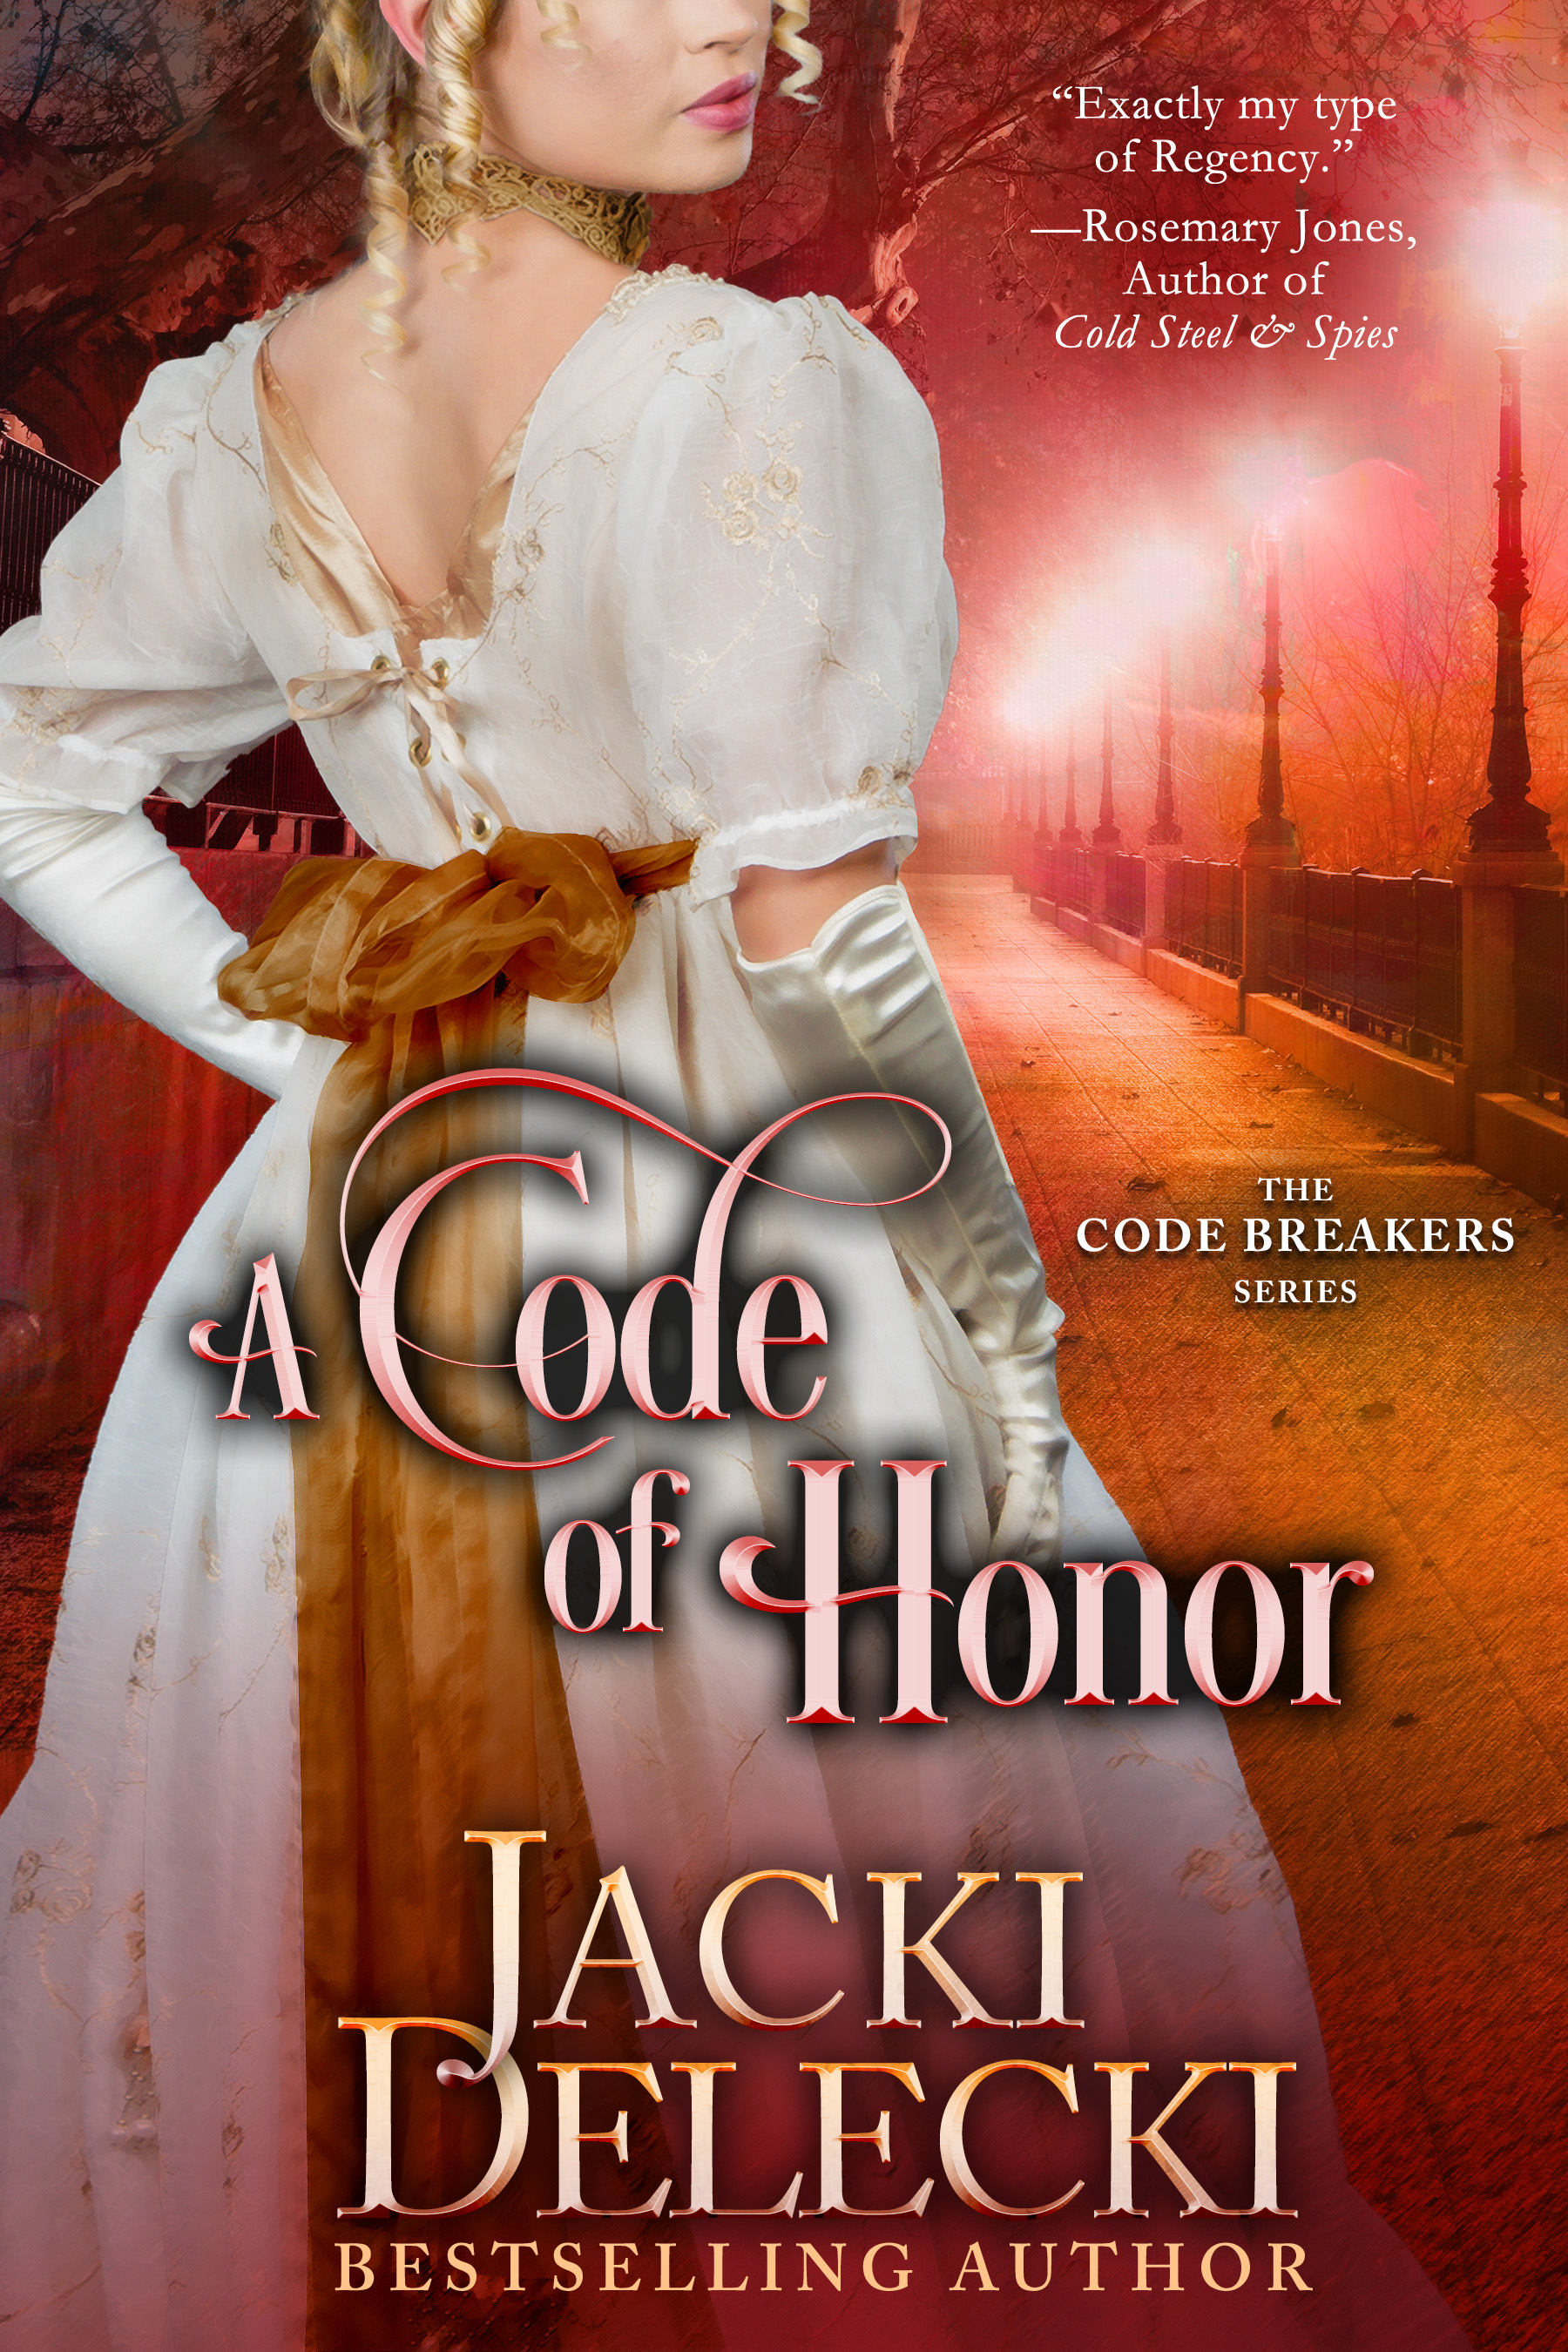 A Code of Honor